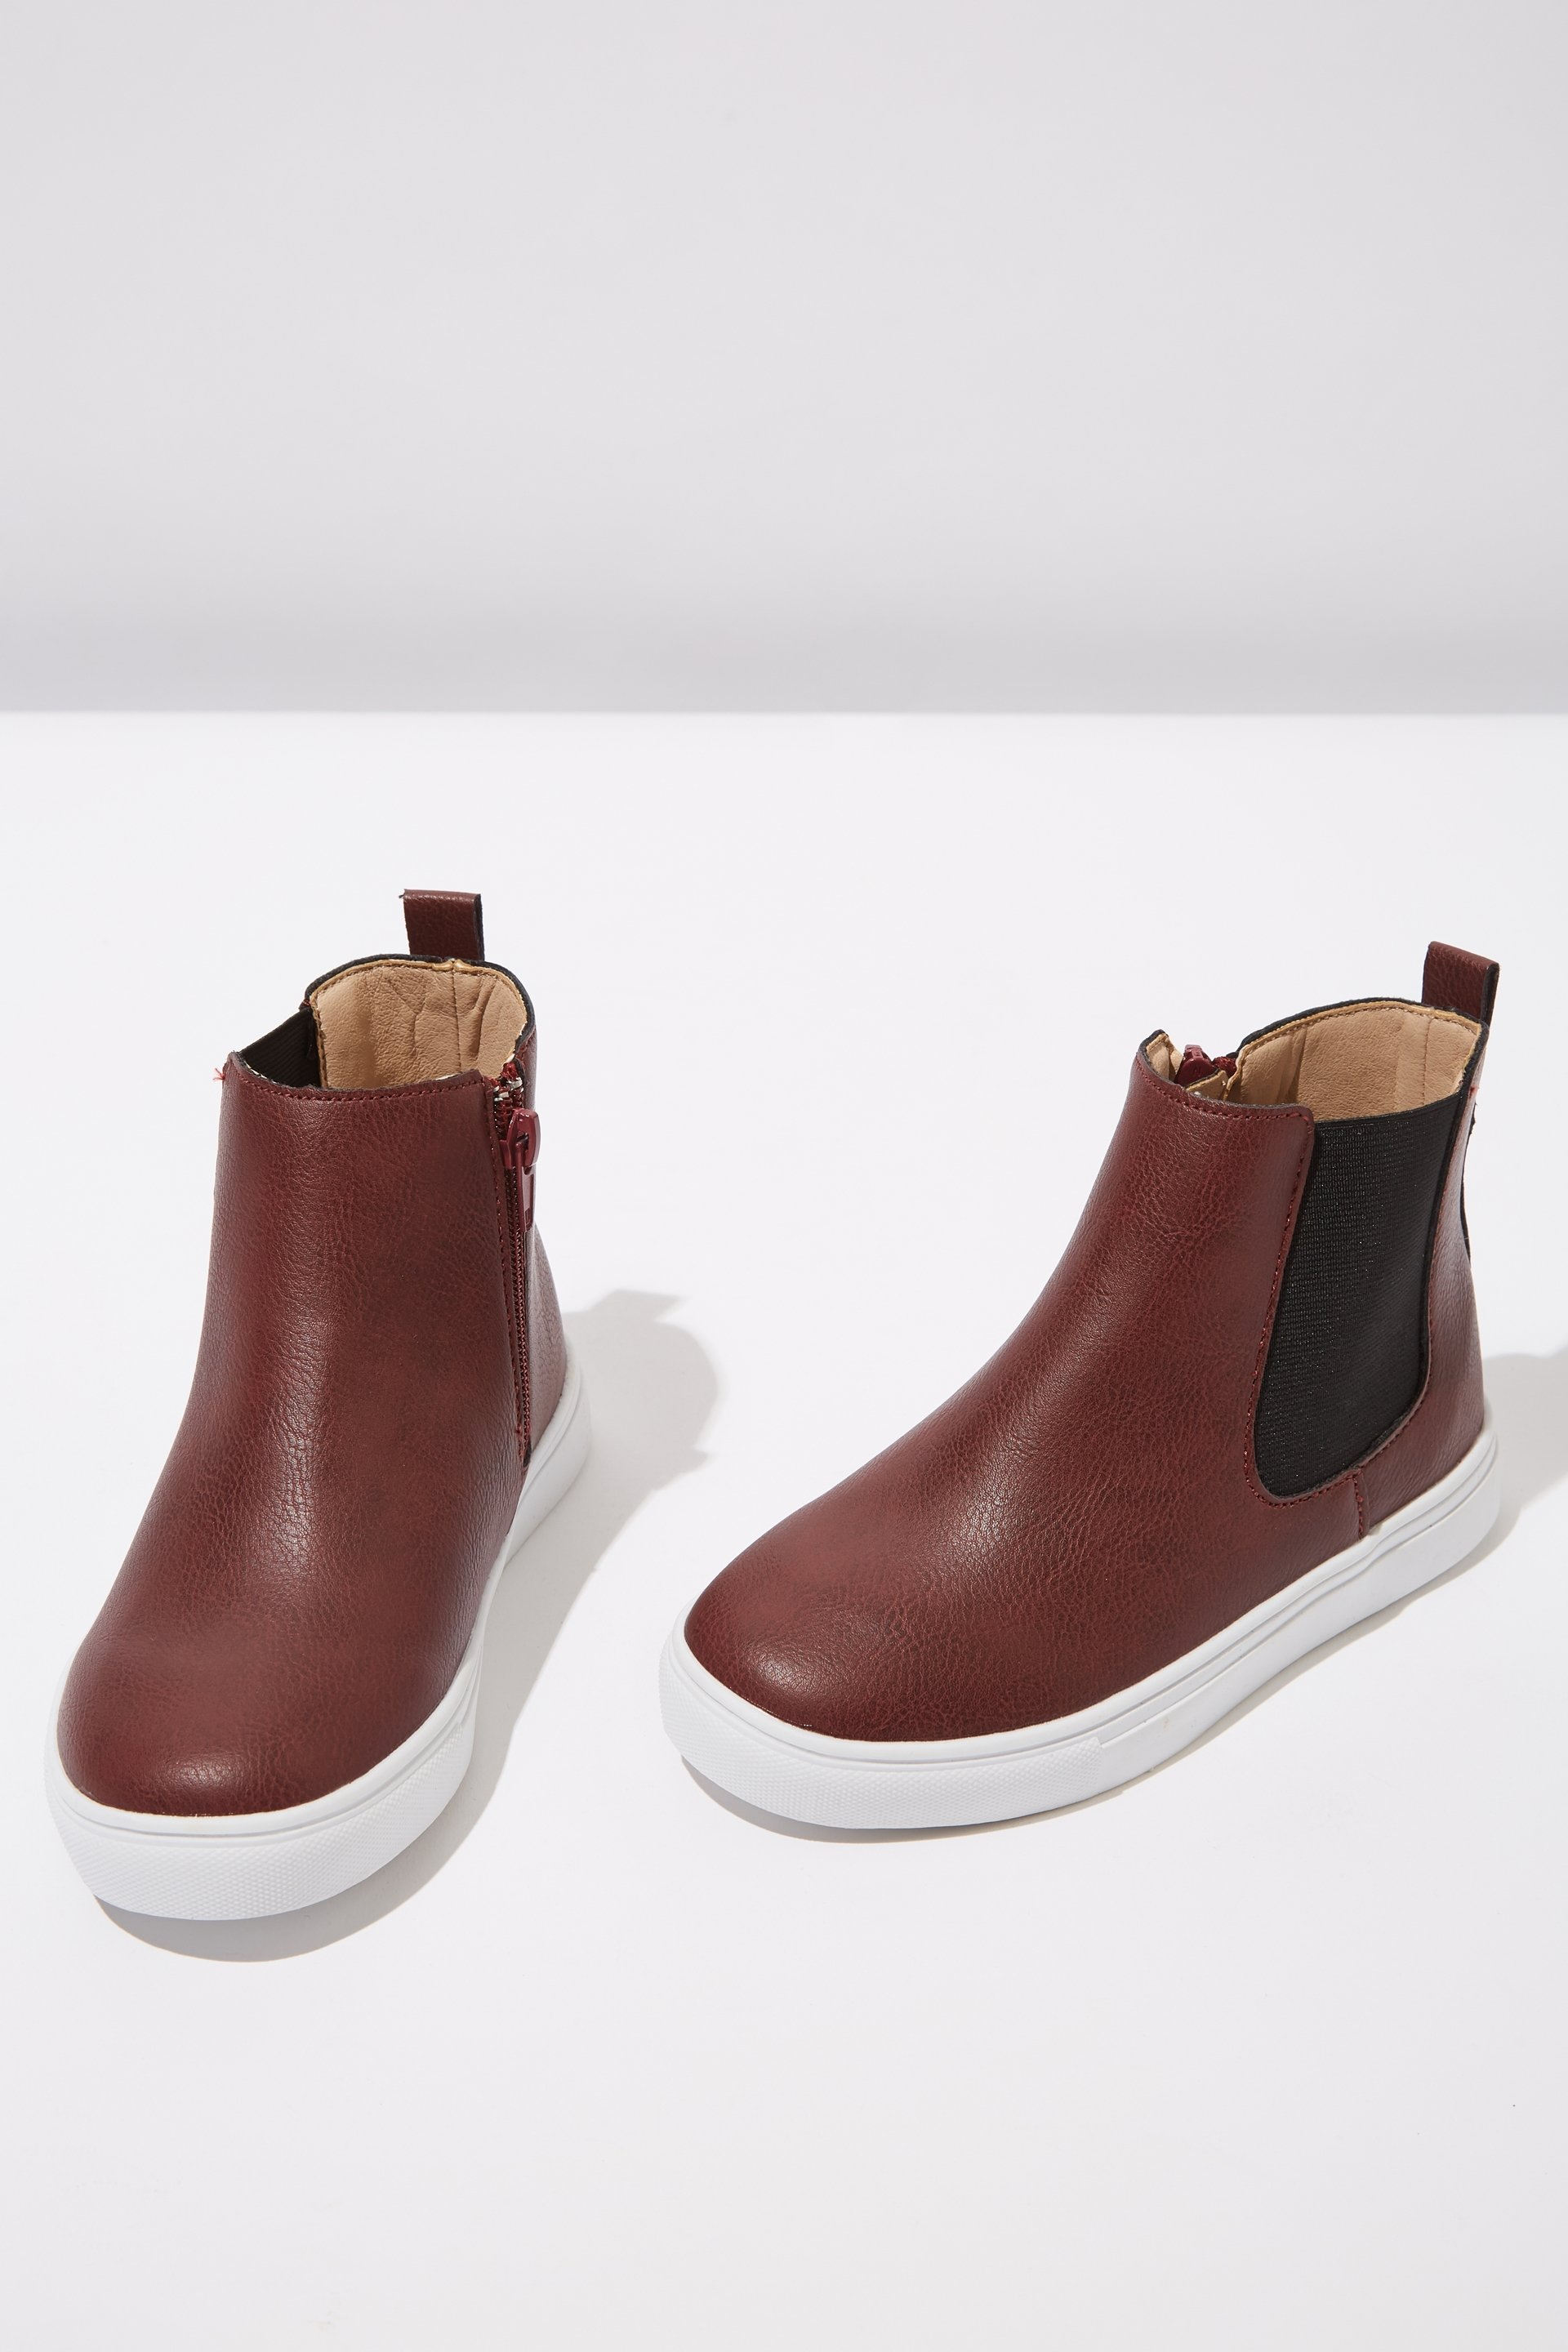 Cotton On Kids - Darcy Gusset Boot - Burgundy smooth